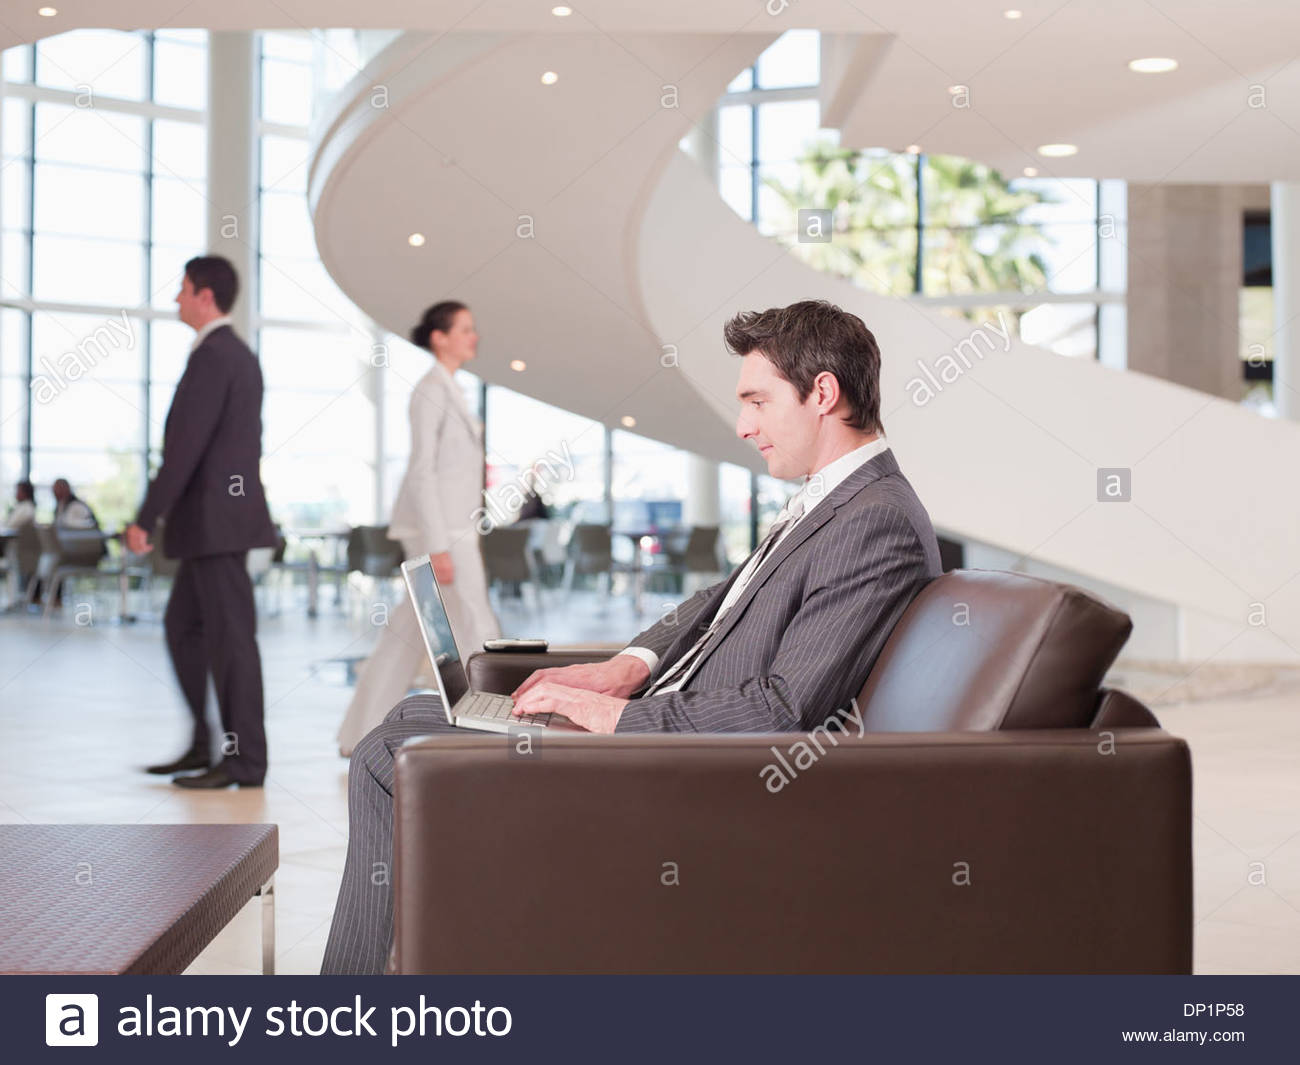 Businessman working in office waiting area - Stock Image